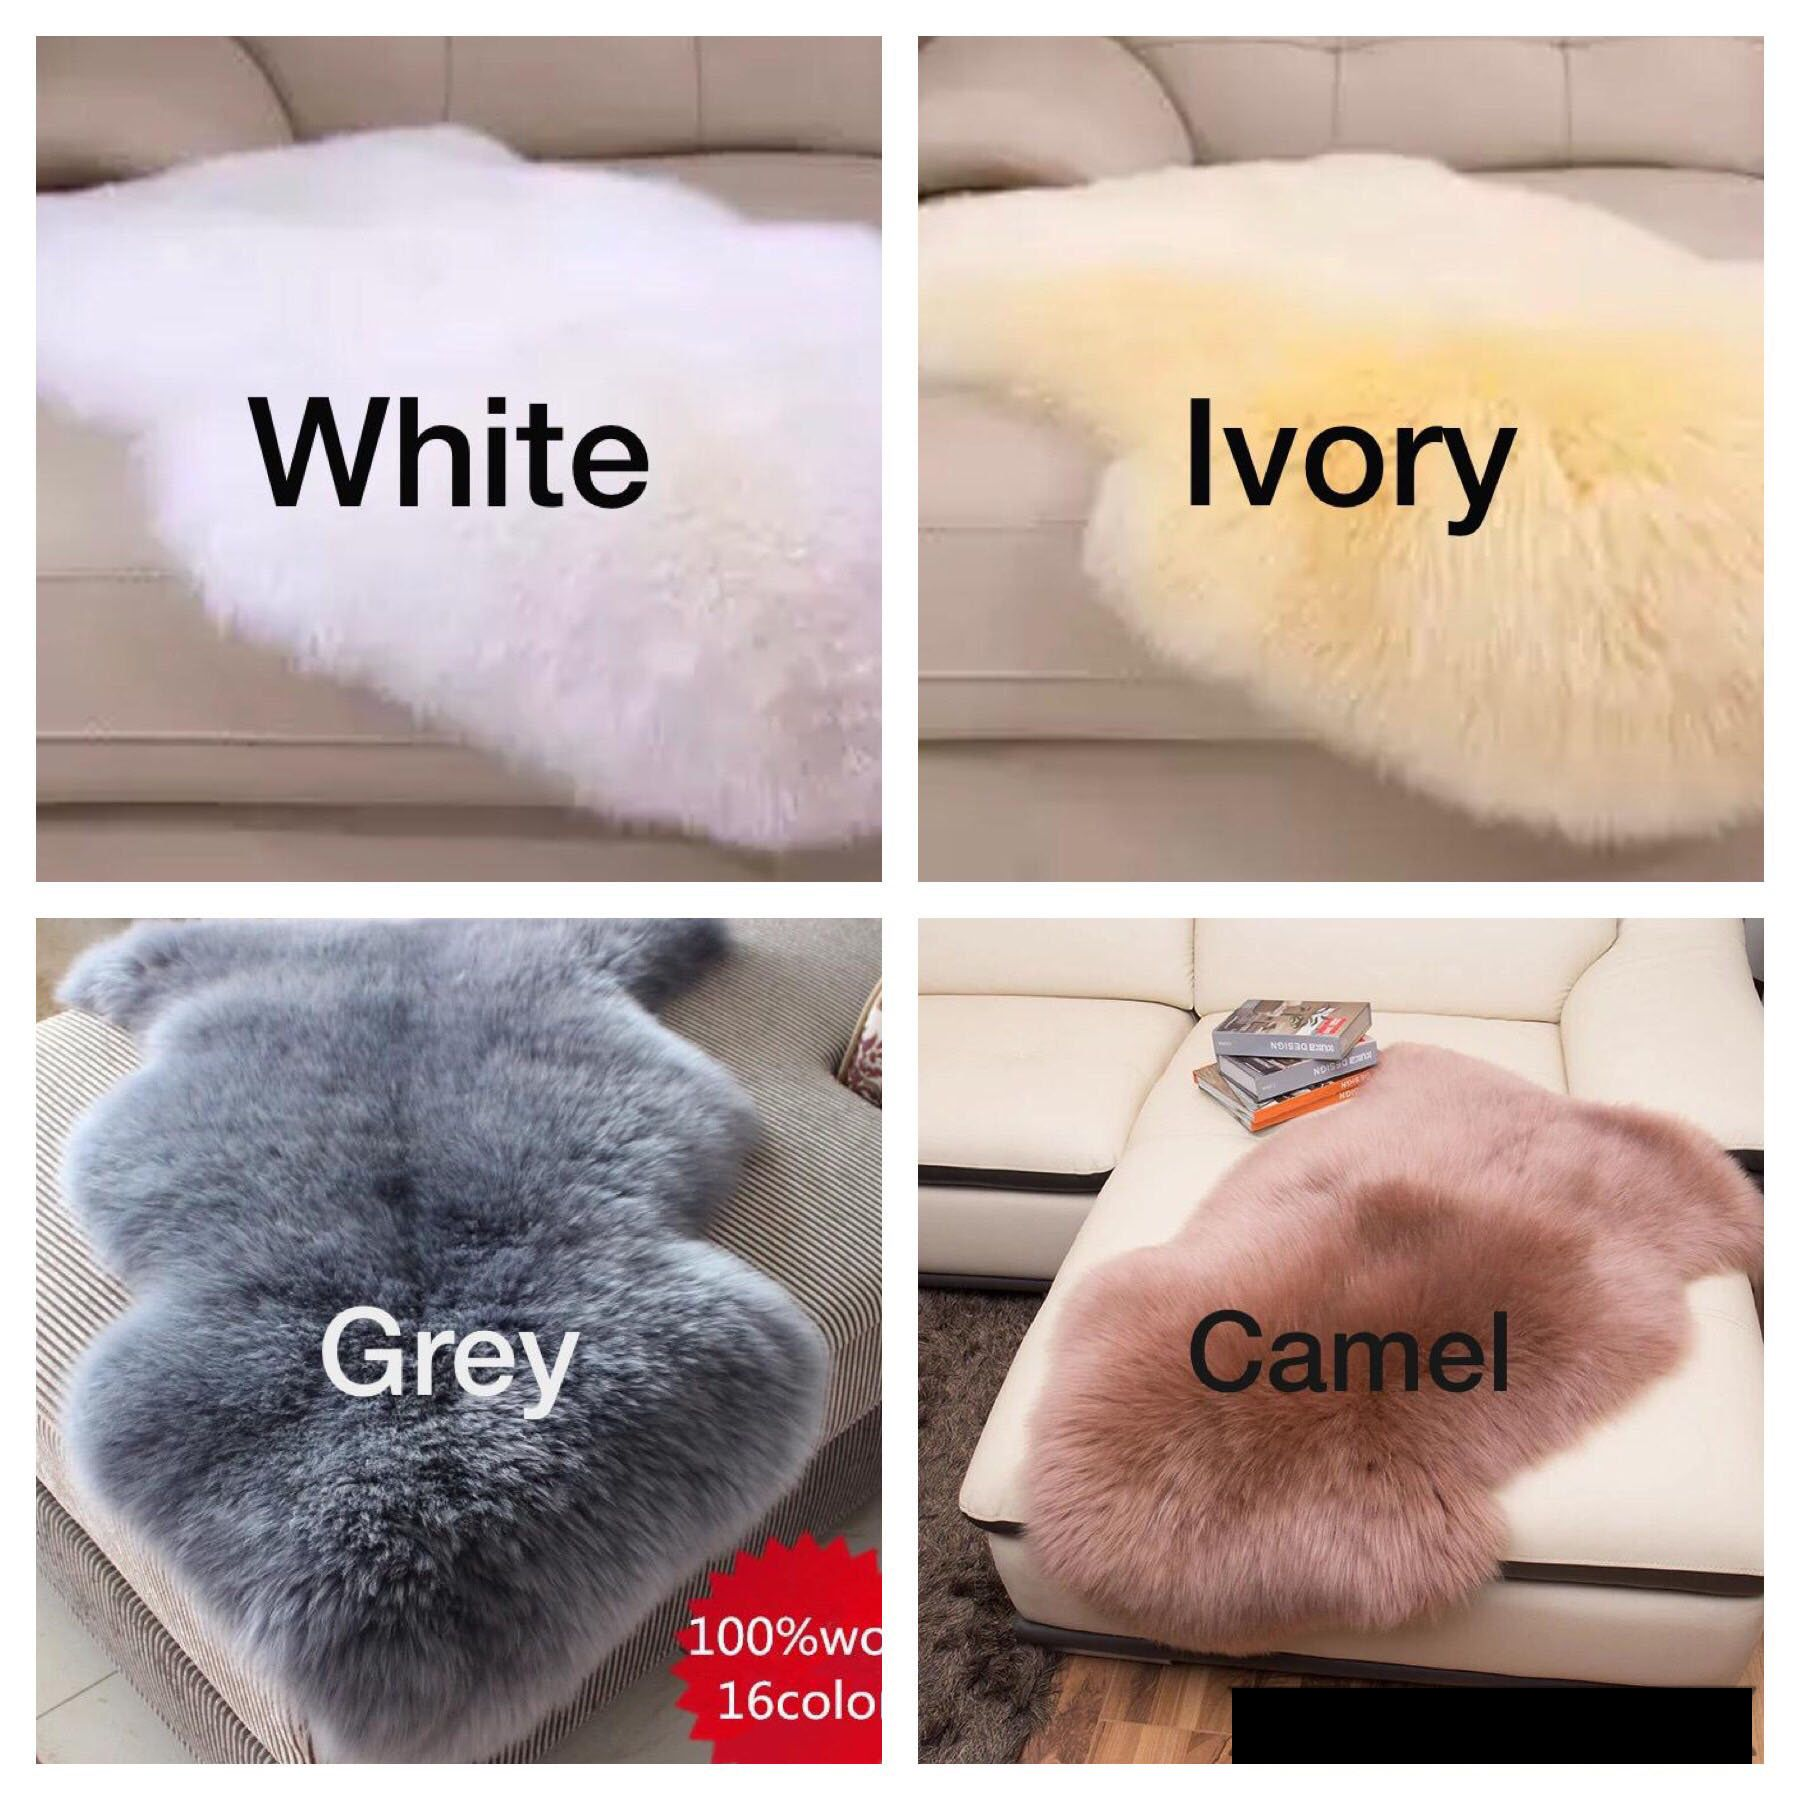 100 Australian Sheepskin Soft Sheepskin Rugs Available In 16 Colors Different Sizes Sheepskin Rug Soft Rug Colorful Rugs